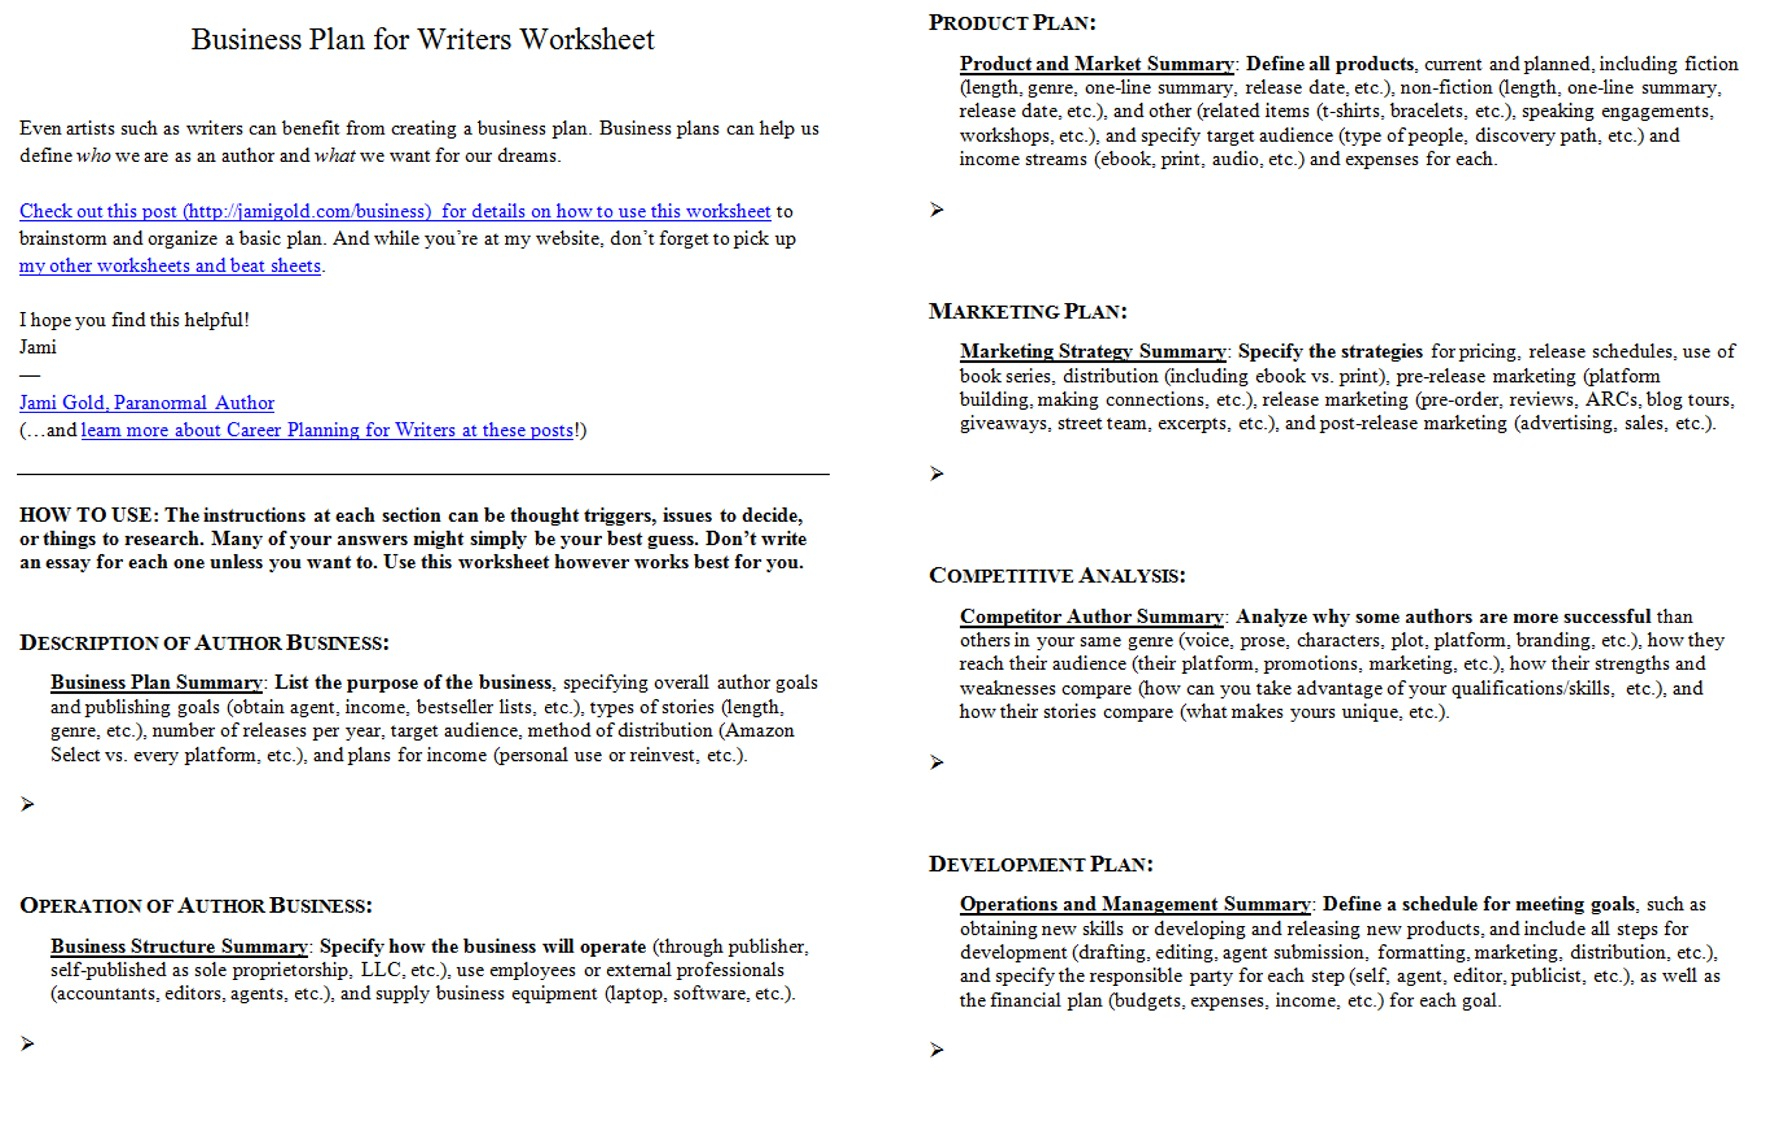 Weirdmailus  Scenic Worksheets For Writers  Jami Gold Paranormal Author With Entrancing Screen Shot Of Both Pages Of The Business Plan For Writers Worksheet With Agreeable Math Worksheets To Go Also Fun Activity Worksheets For Middle School In Addition Chemistry Puns Worksheet Answers And Rd Grade Capitalization And Punctuation Worksheets As Well As Budget Worksheets For Kids Additionally Adding Fractions Practice Worksheets From Jamigoldcom With Weirdmailus  Entrancing Worksheets For Writers  Jami Gold Paranormal Author With Agreeable Screen Shot Of Both Pages Of The Business Plan For Writers Worksheet And Scenic Math Worksheets To Go Also Fun Activity Worksheets For Middle School In Addition Chemistry Puns Worksheet Answers From Jamigoldcom